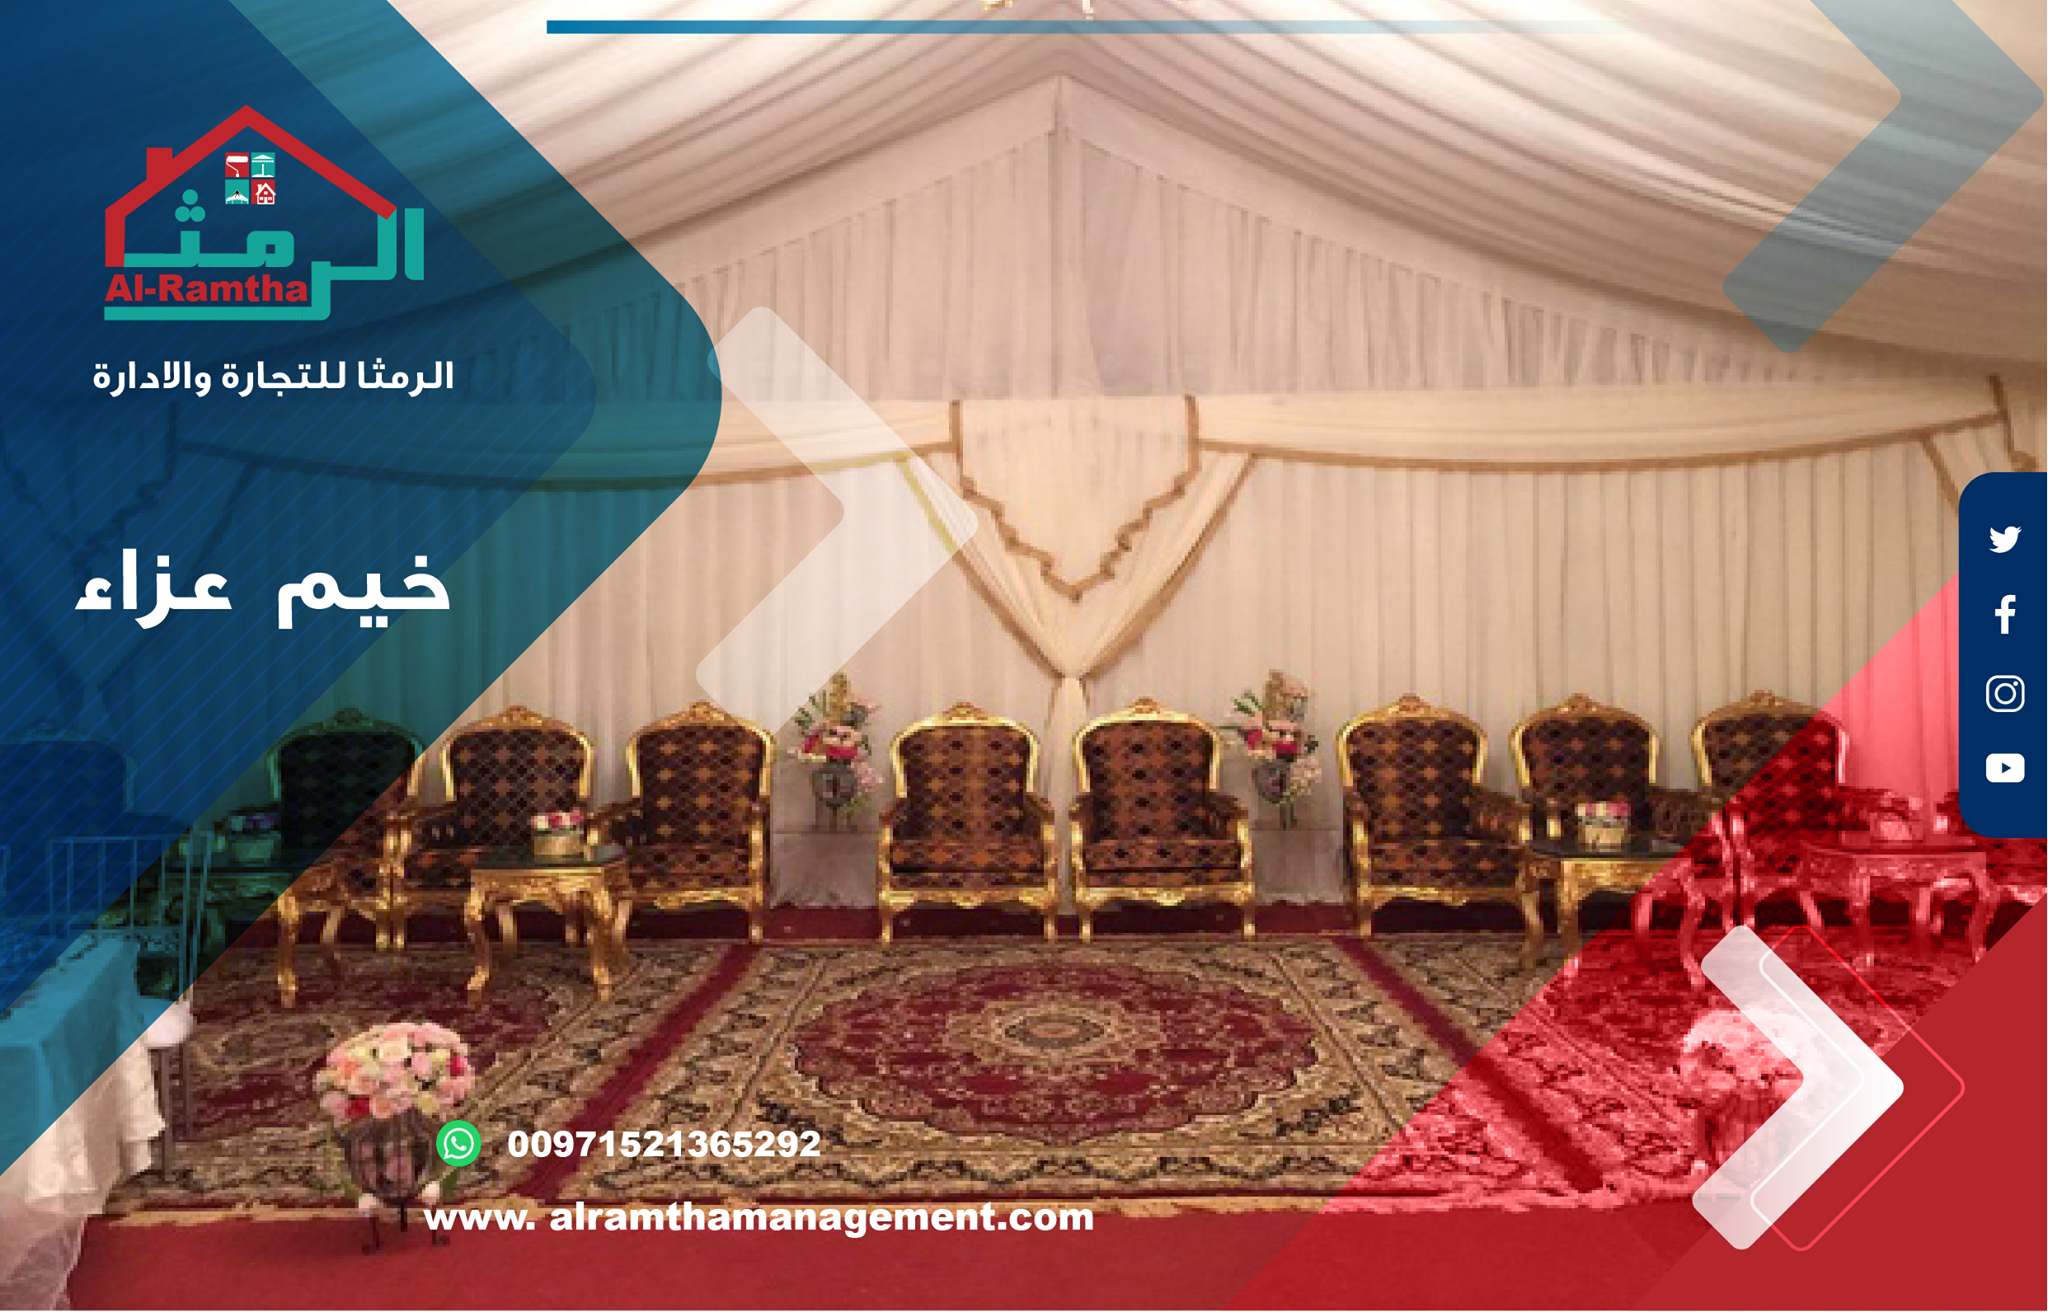 Consolation Tents خيام عزاء Movies Movie Posters Poster